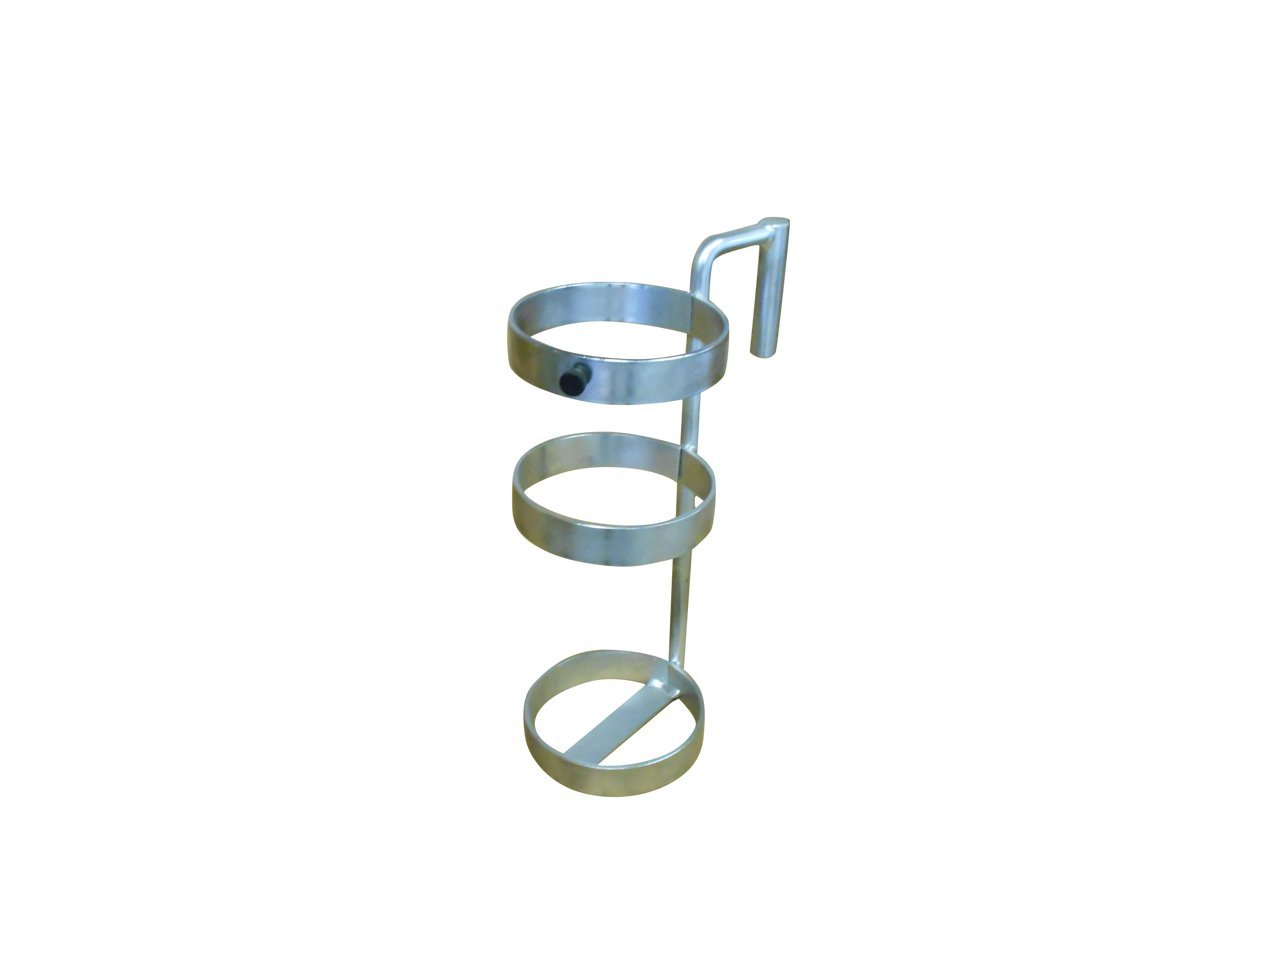 FWF OXYGEN HOLDER FOR HILL-ROM BED 3 RING DESIGN HOLDS 1 (D OR E STYLE) CYLINDER DIAMETER 4.3'' MADE IN USA